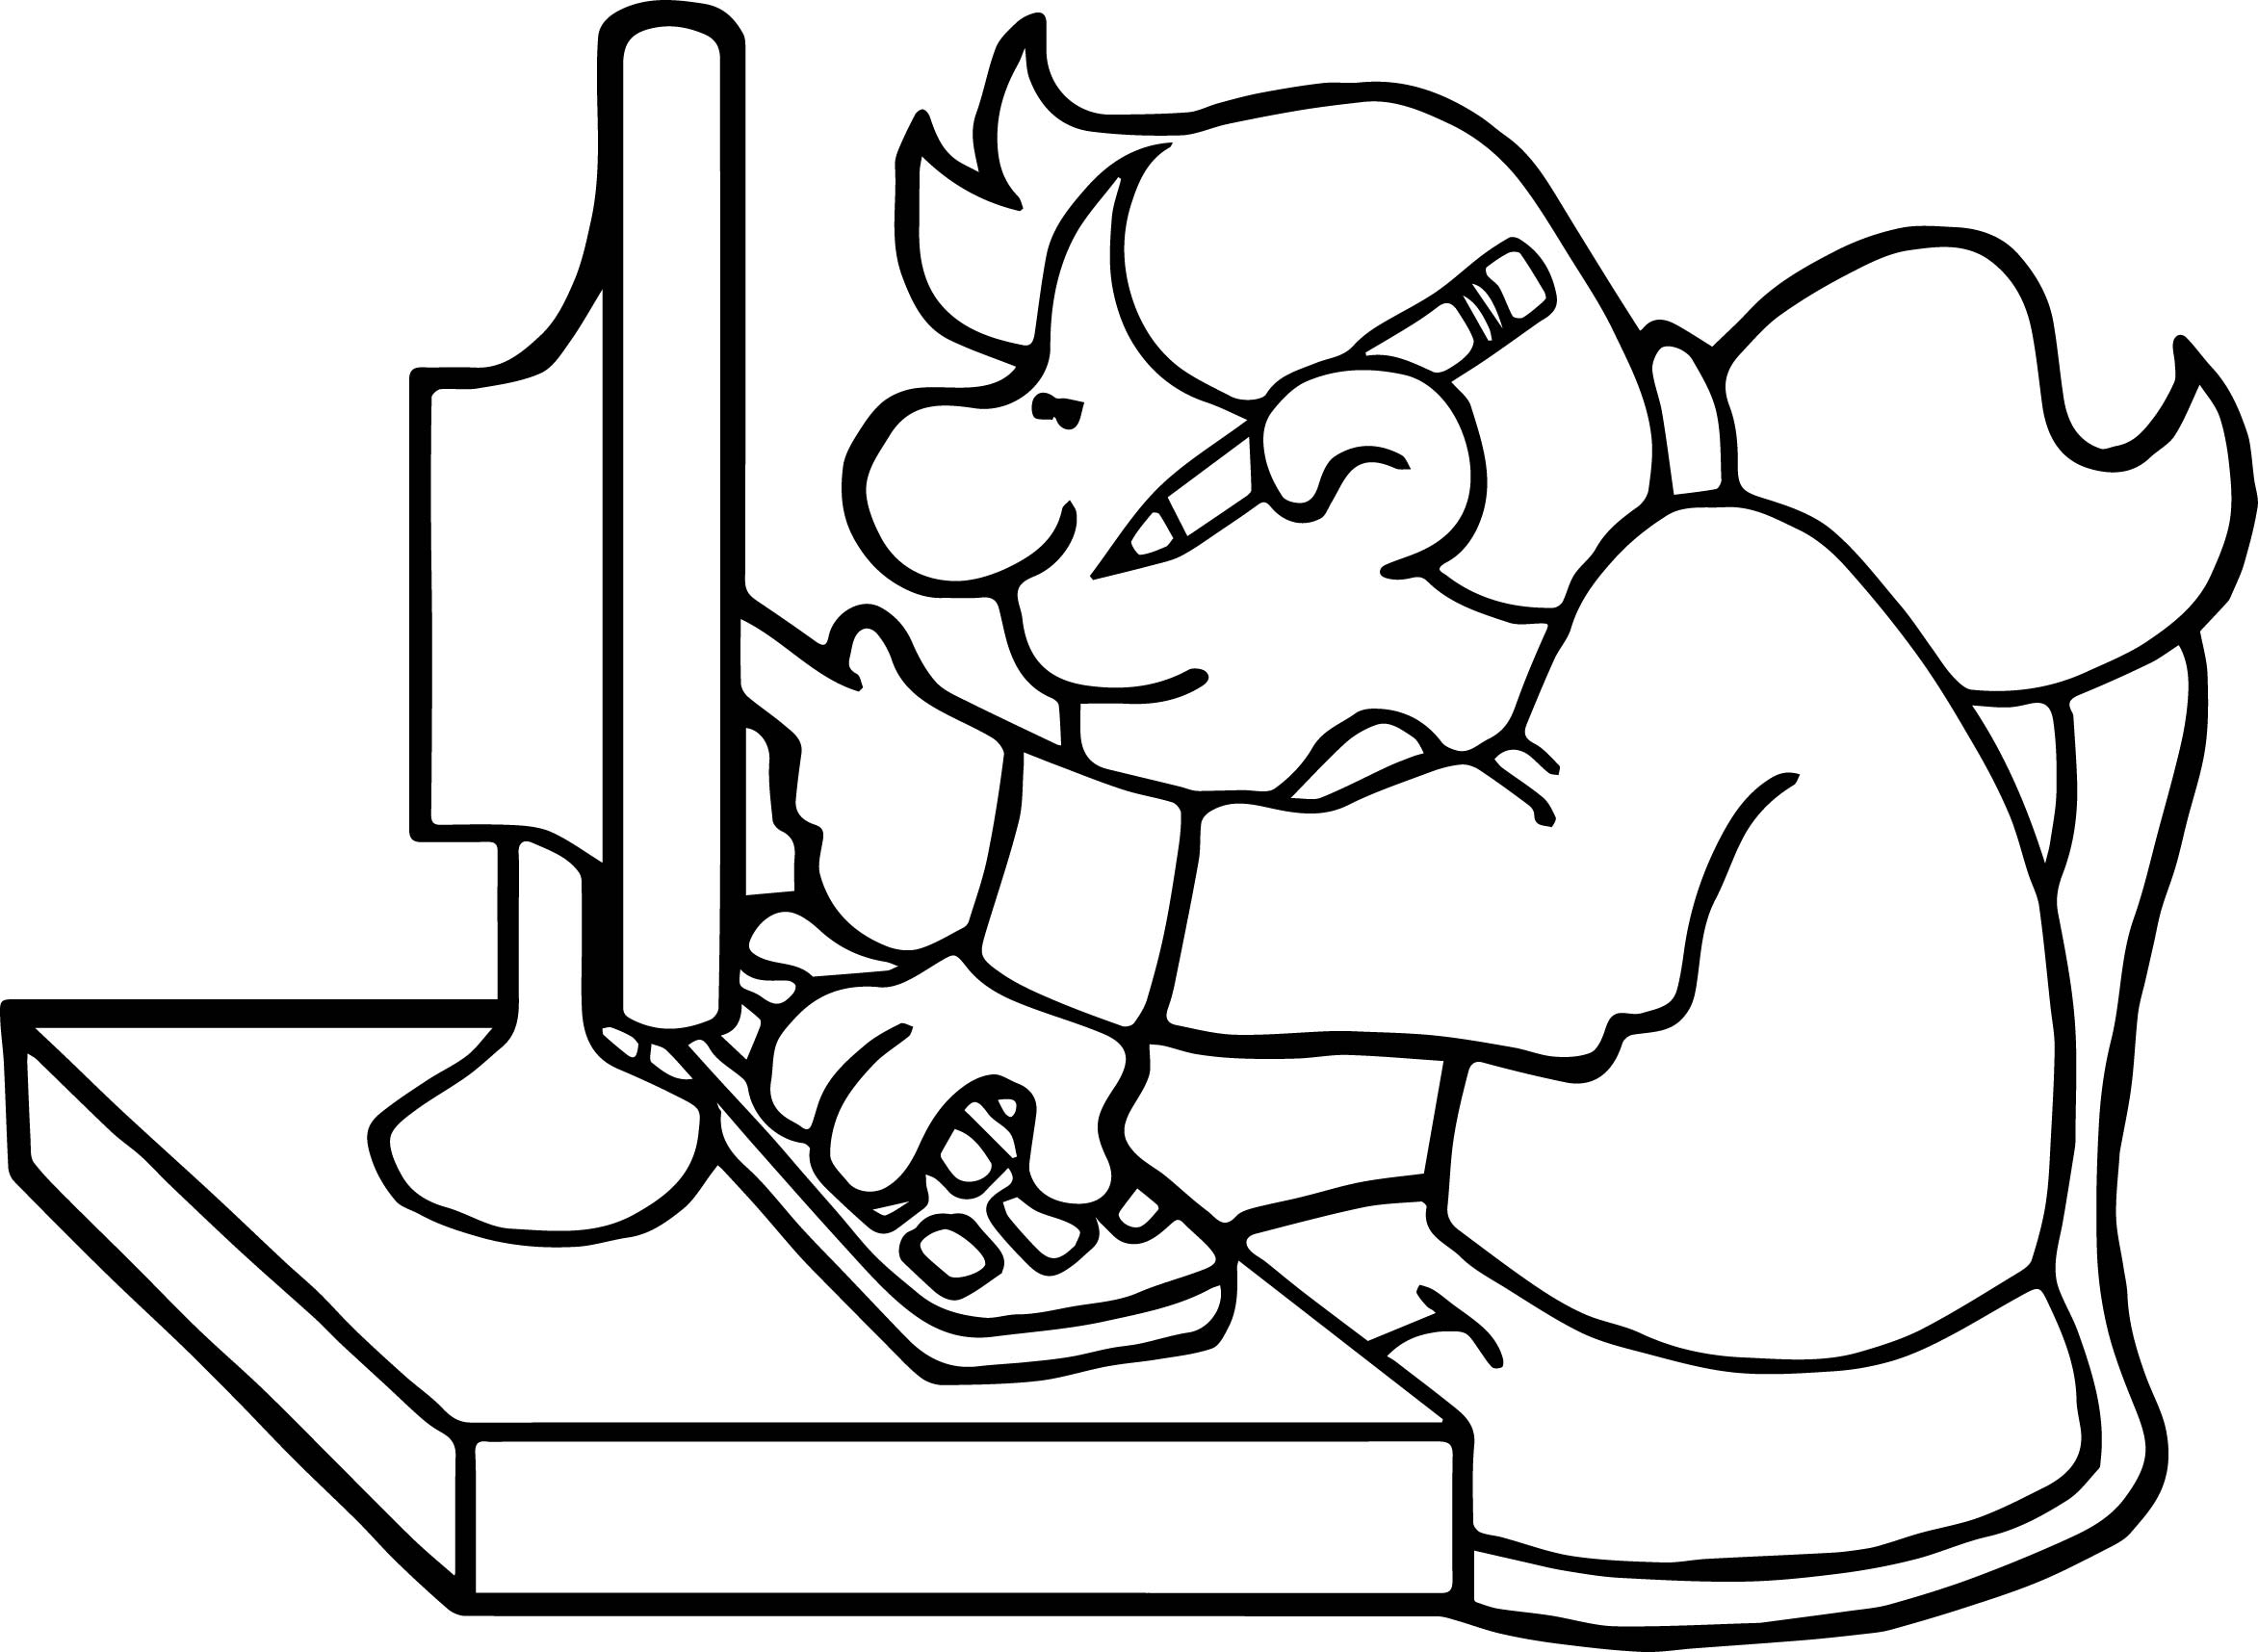 School Research Playing Computer Games Coloring Page